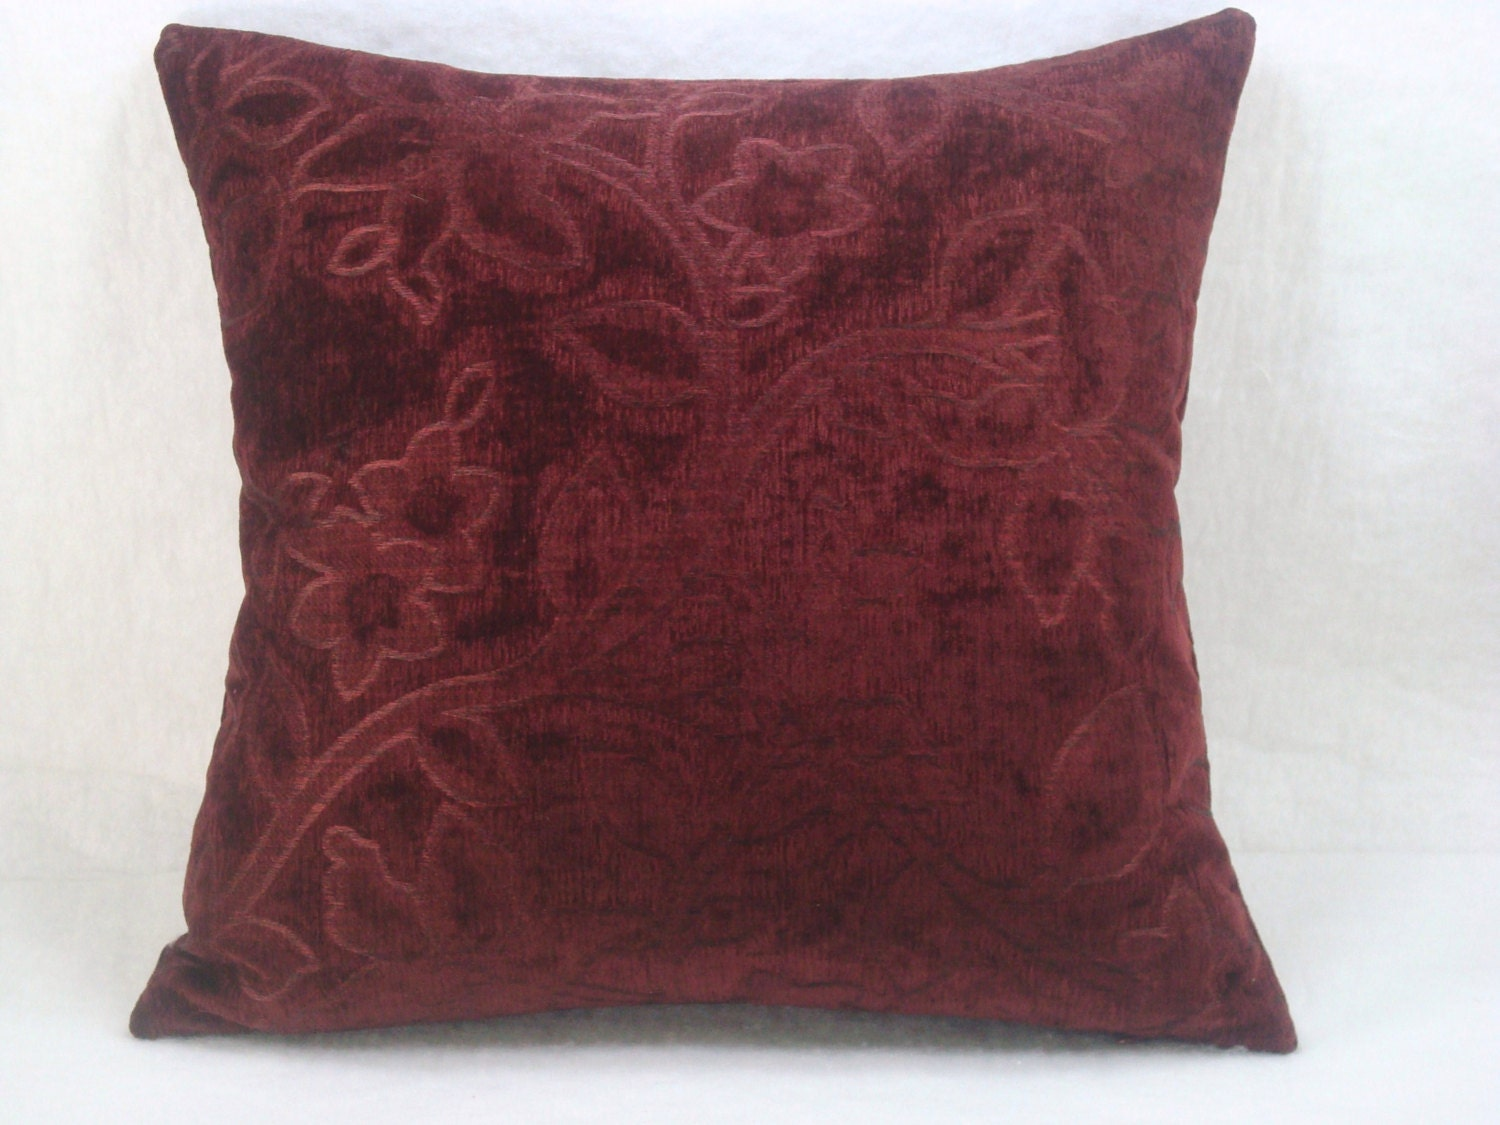 Throw Pillows Maroon : Decorative Upholstery Pillow Maroon Sofa Pillow 18x18 Pillow